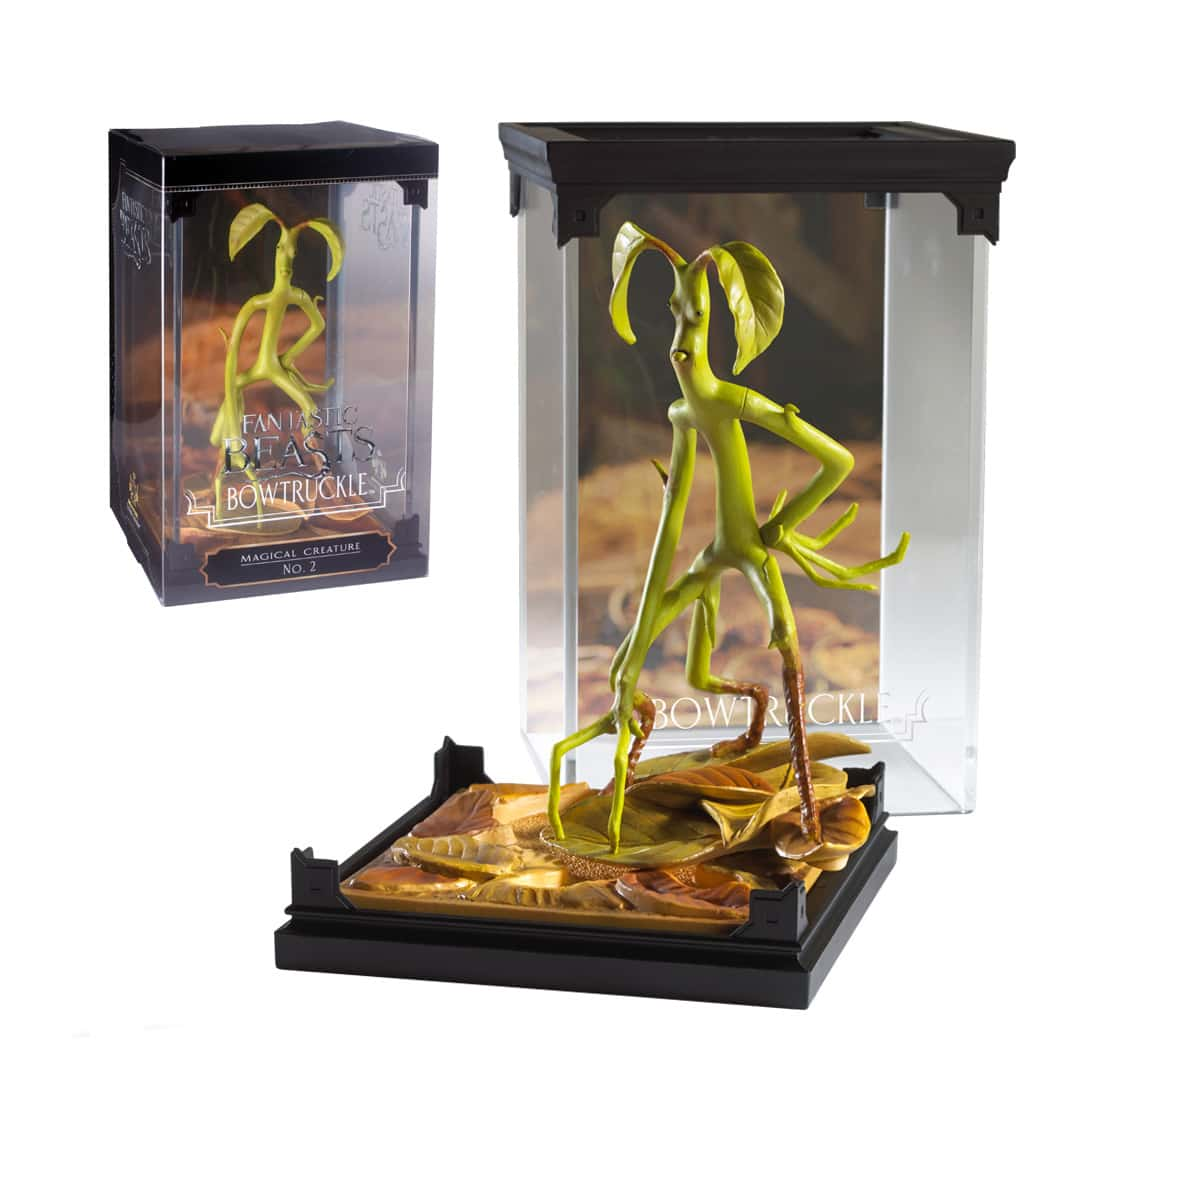 BOWTRUCKLE CRIATURA MAGICA 2 FIGURA FANTASTIC BEASTS AND WHERE TO FIND THEM